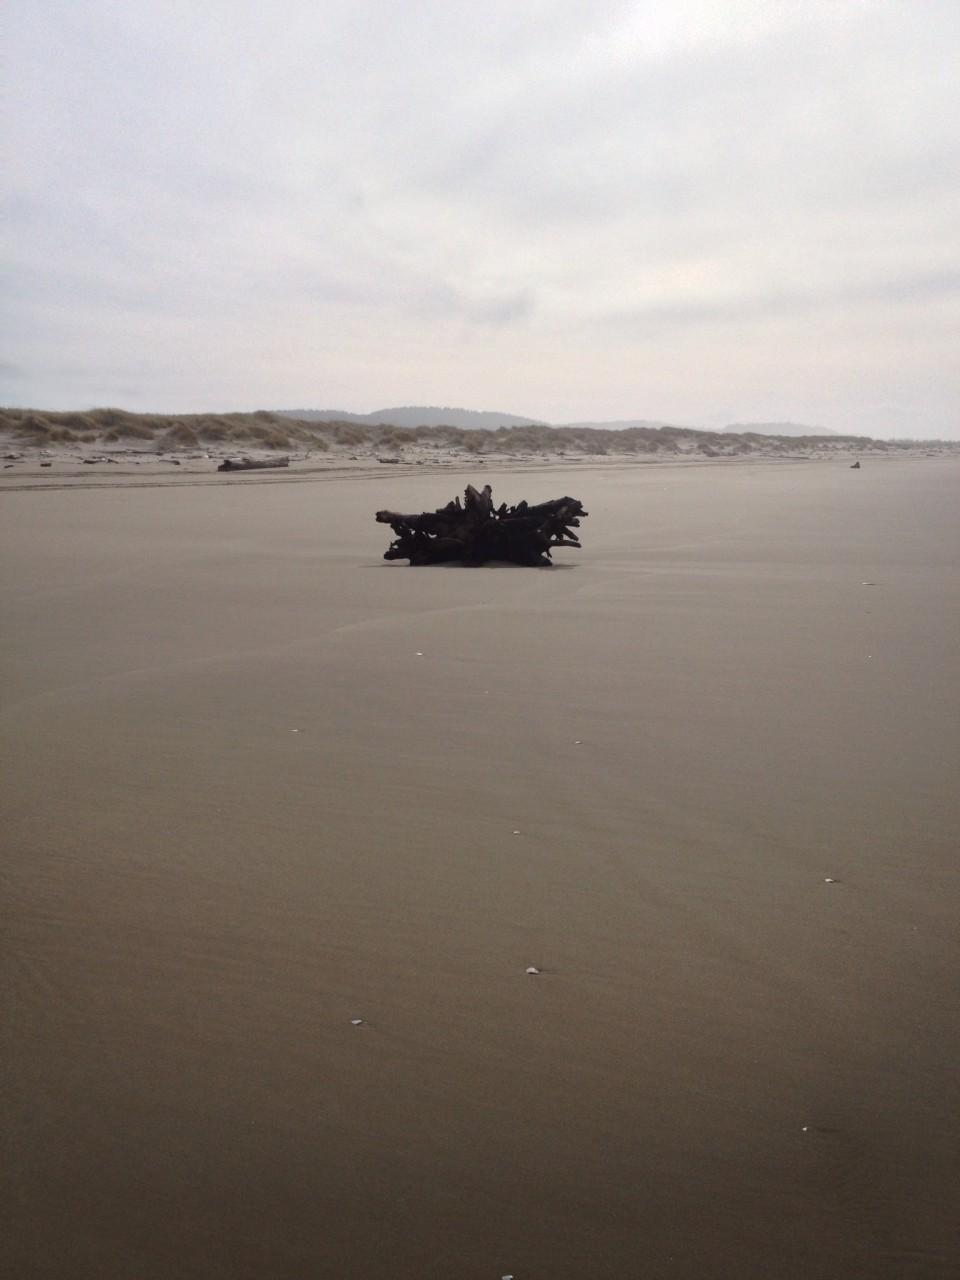 Lots of driftwood piled up next to the foredune